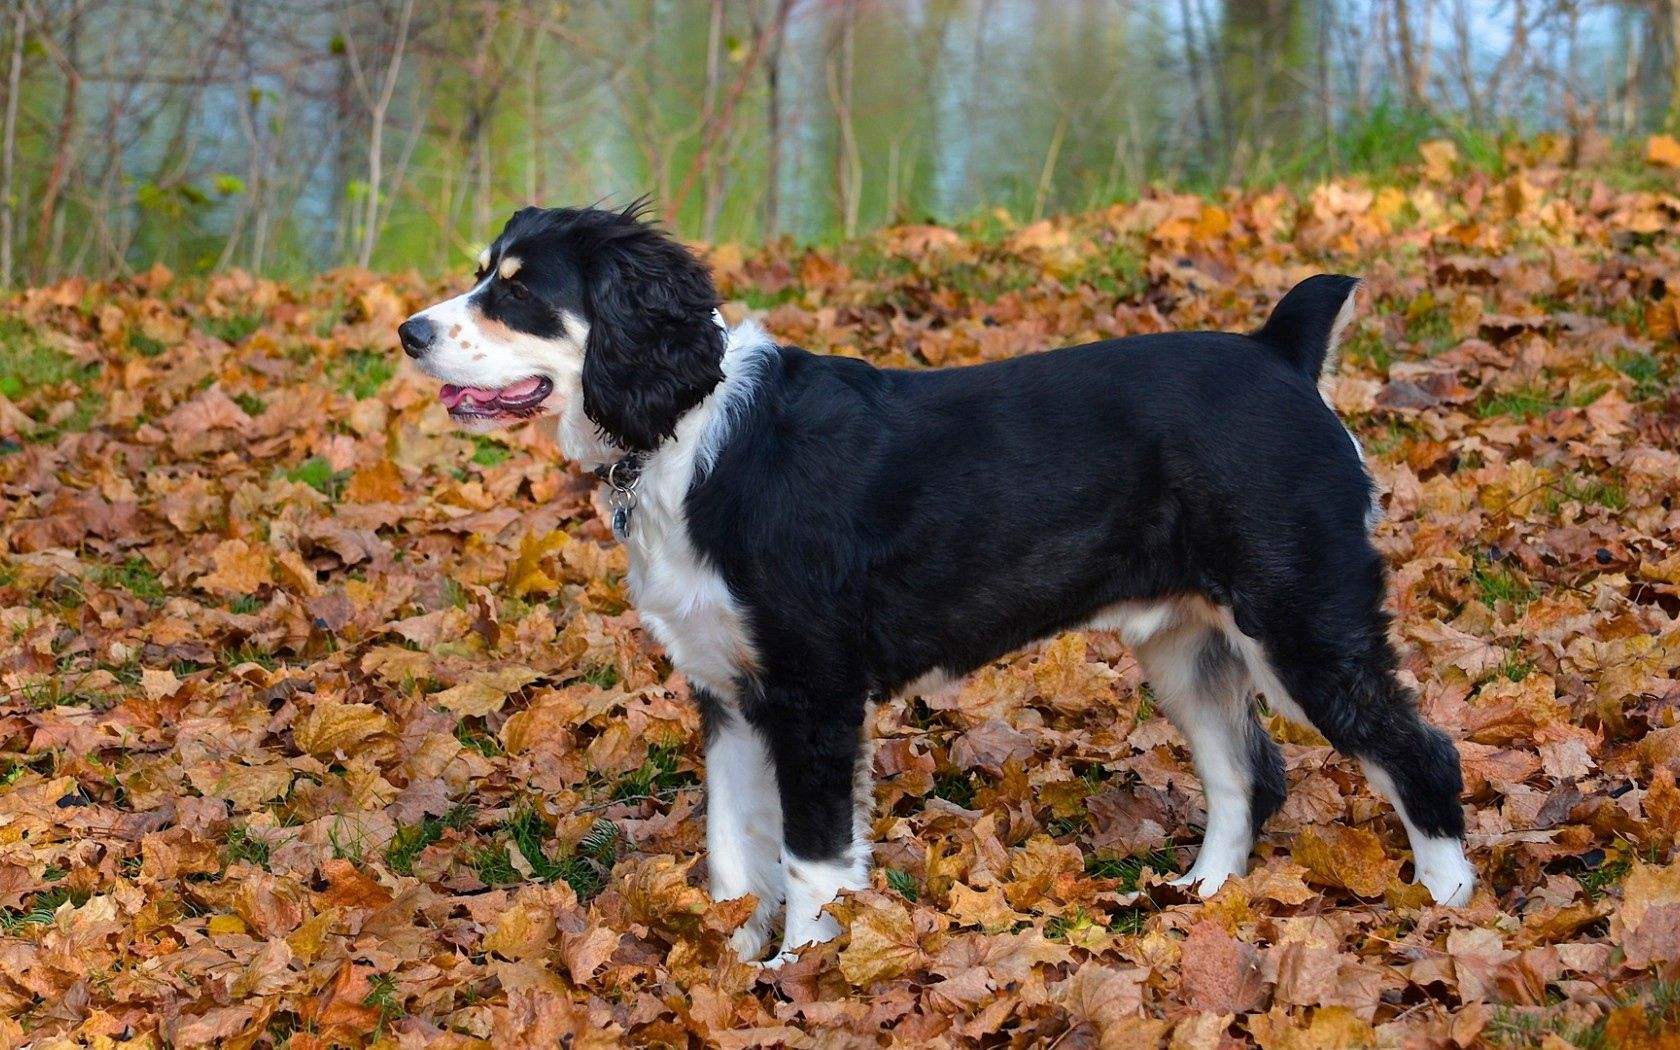 142712 download wallpaper Animals, Dog, Autumn, Leaves screensavers and pictures for free